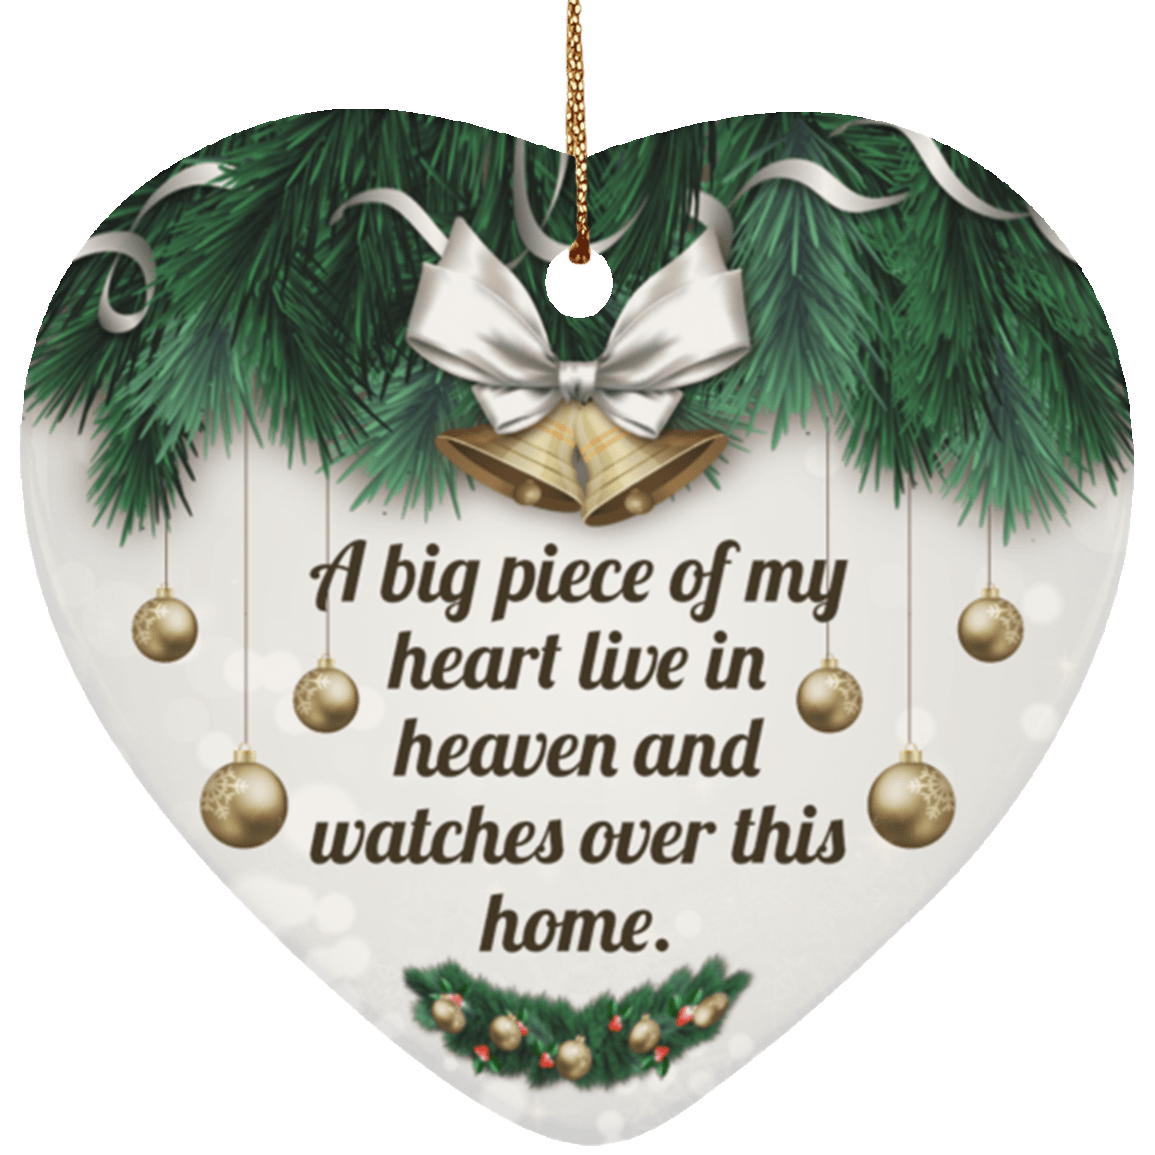 Christmas In Heaven Ornament.A Big Peace Of My Heart Lives In Heaven And Watches Over This Home Christmas Ceramic Heart Ornament